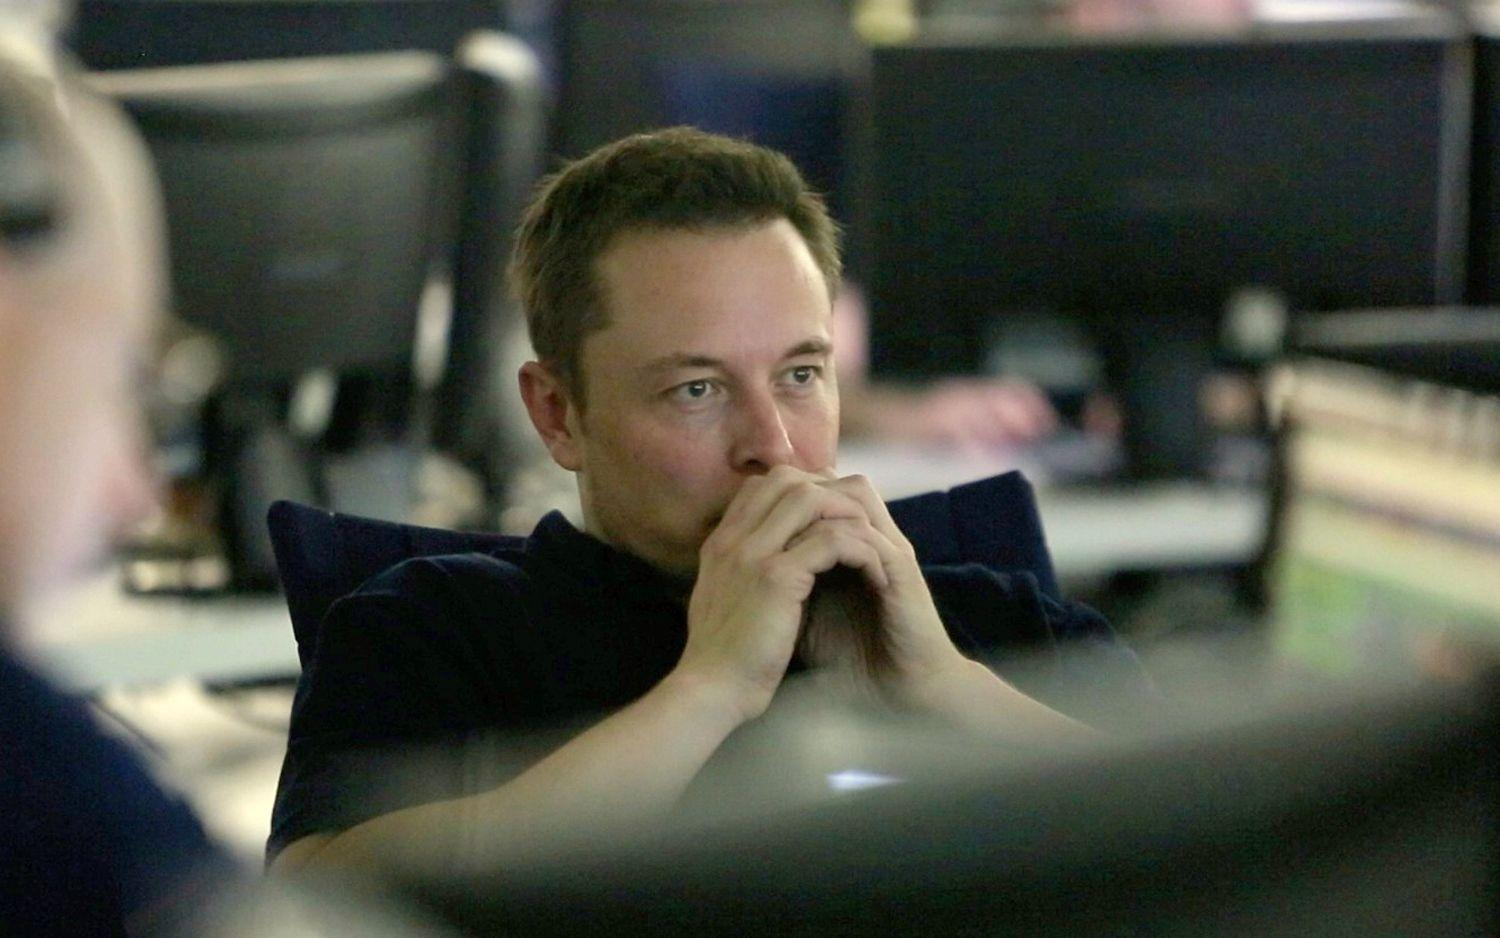 Elon Musk's most important role as leader ... to build brand